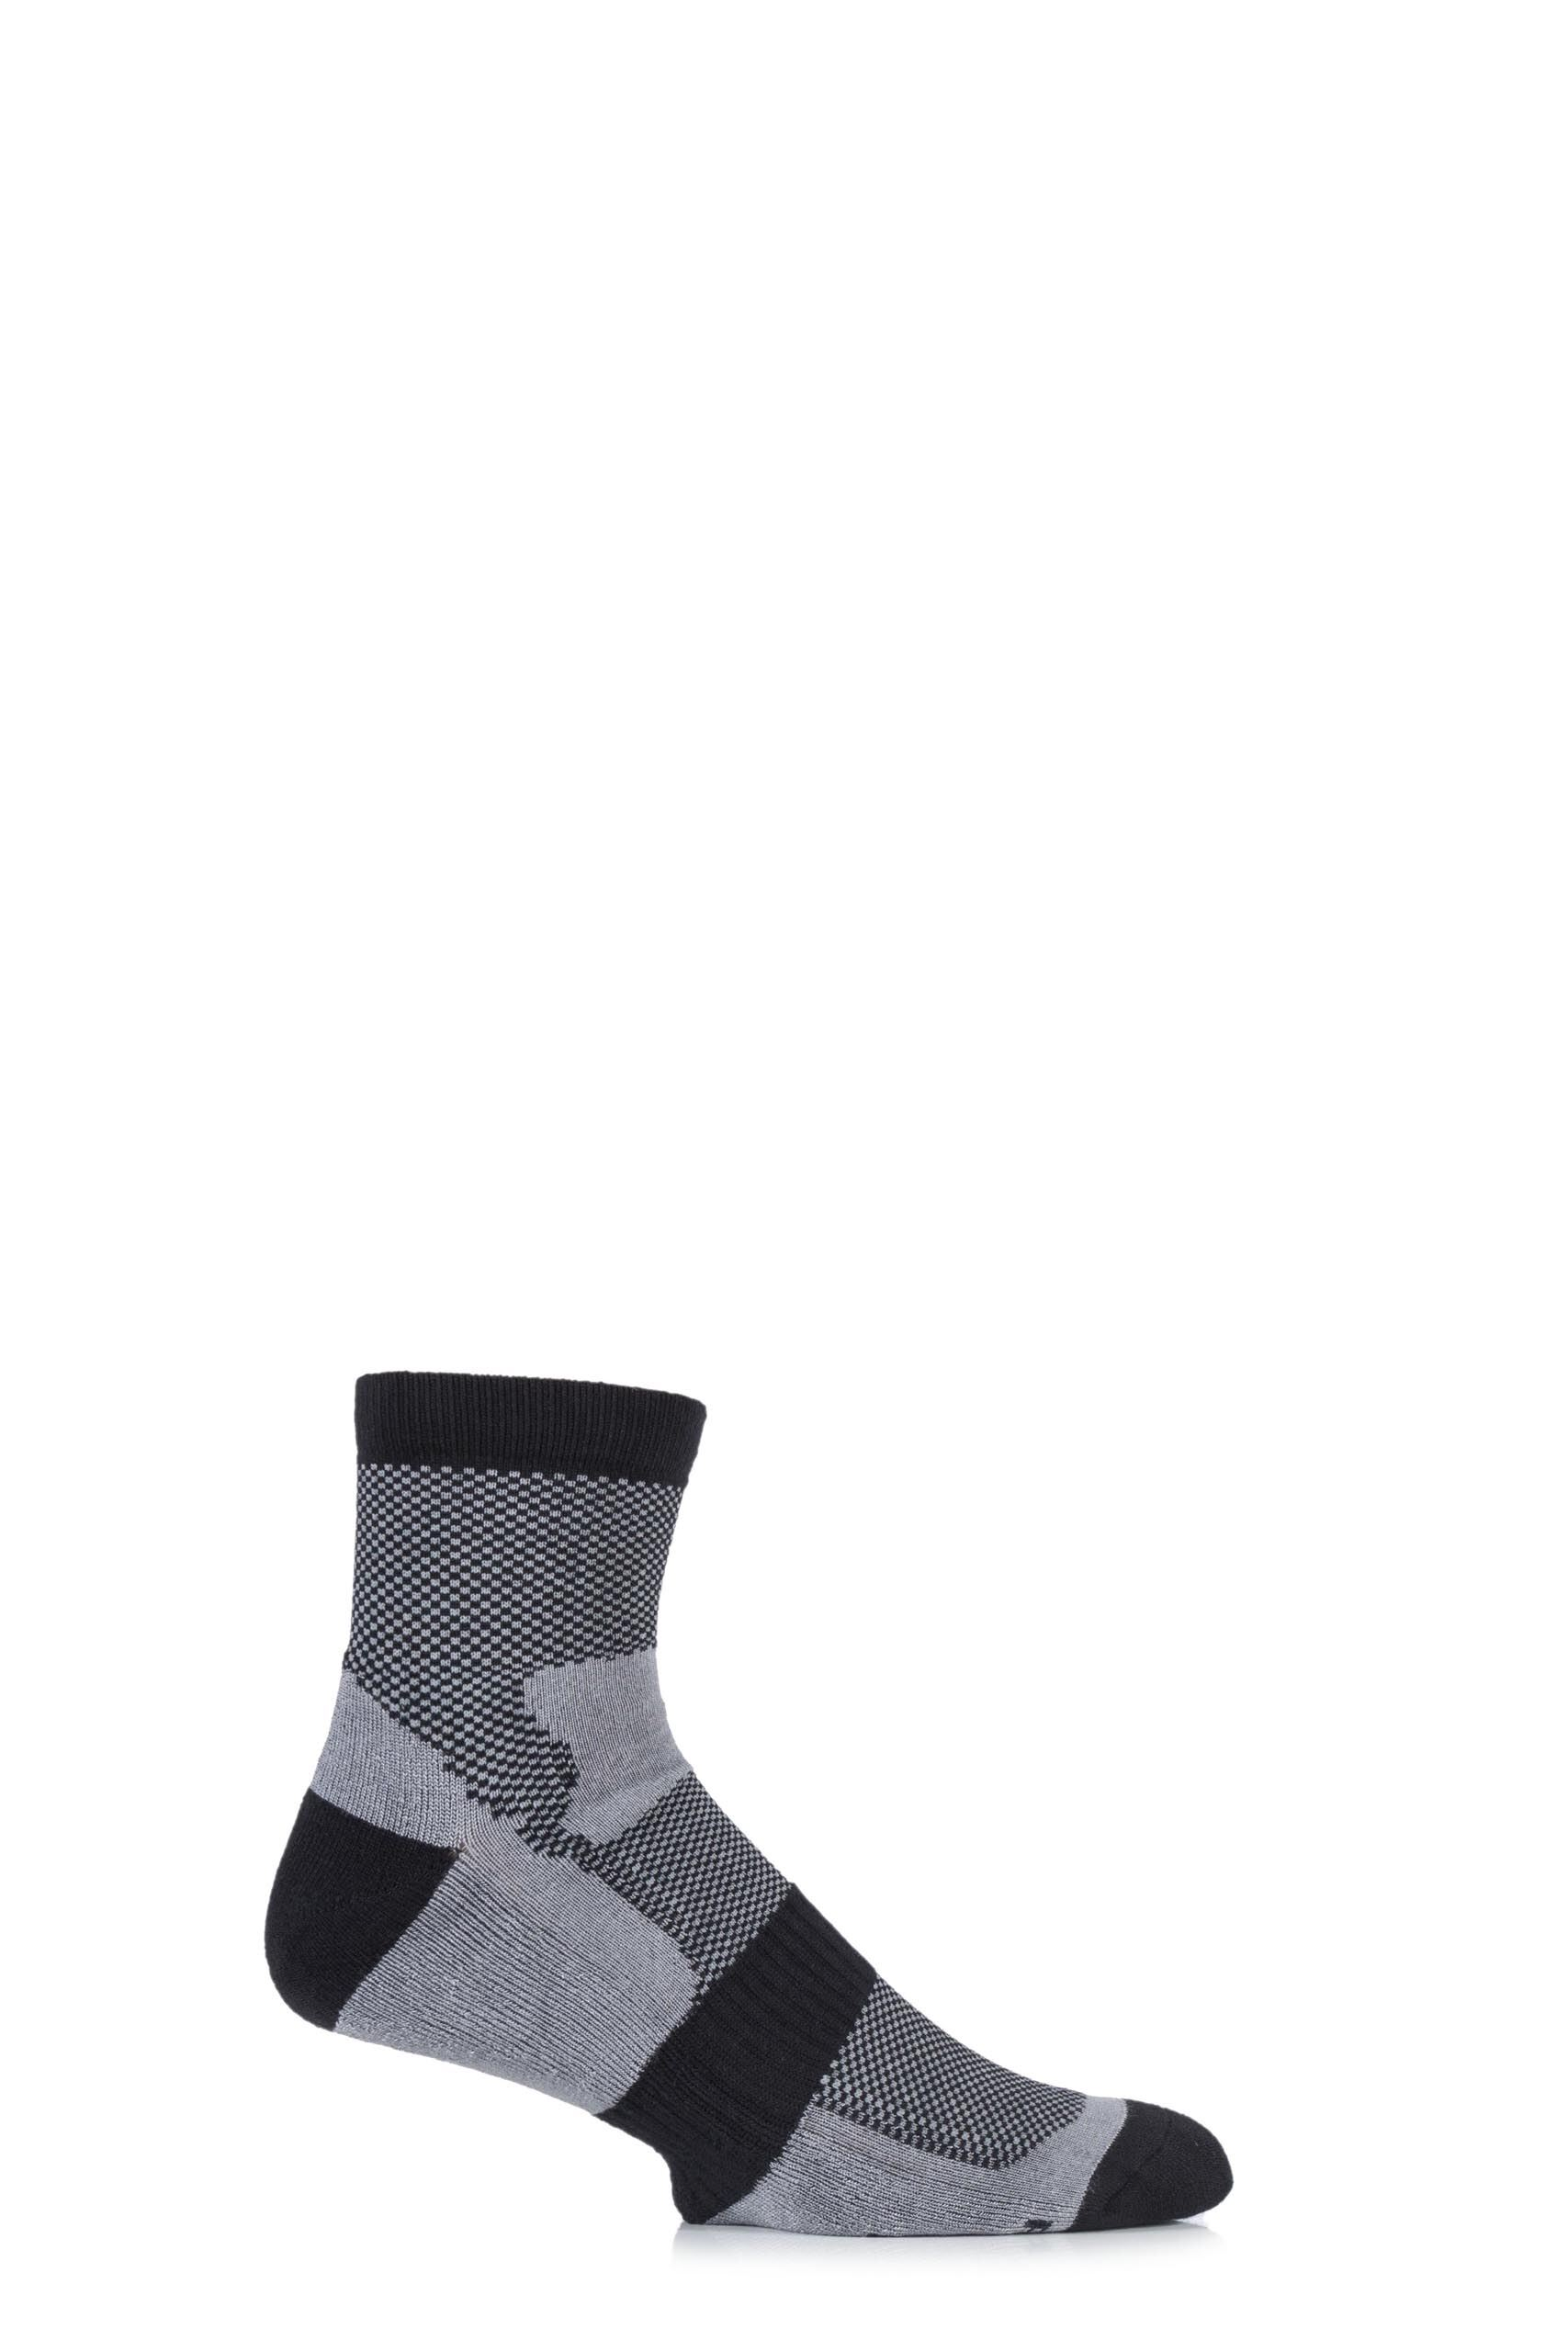 Image of 1 Pair Black Bamboo Cushioned Sports Socks Men's 6-11 Mens - HJ Hall